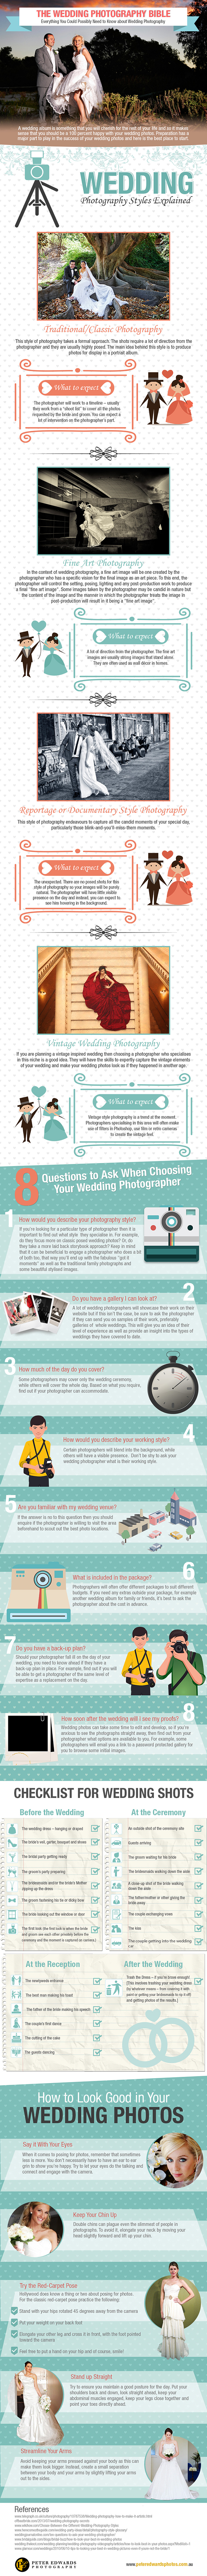 Wedding-photography-Bible-Infographic-1